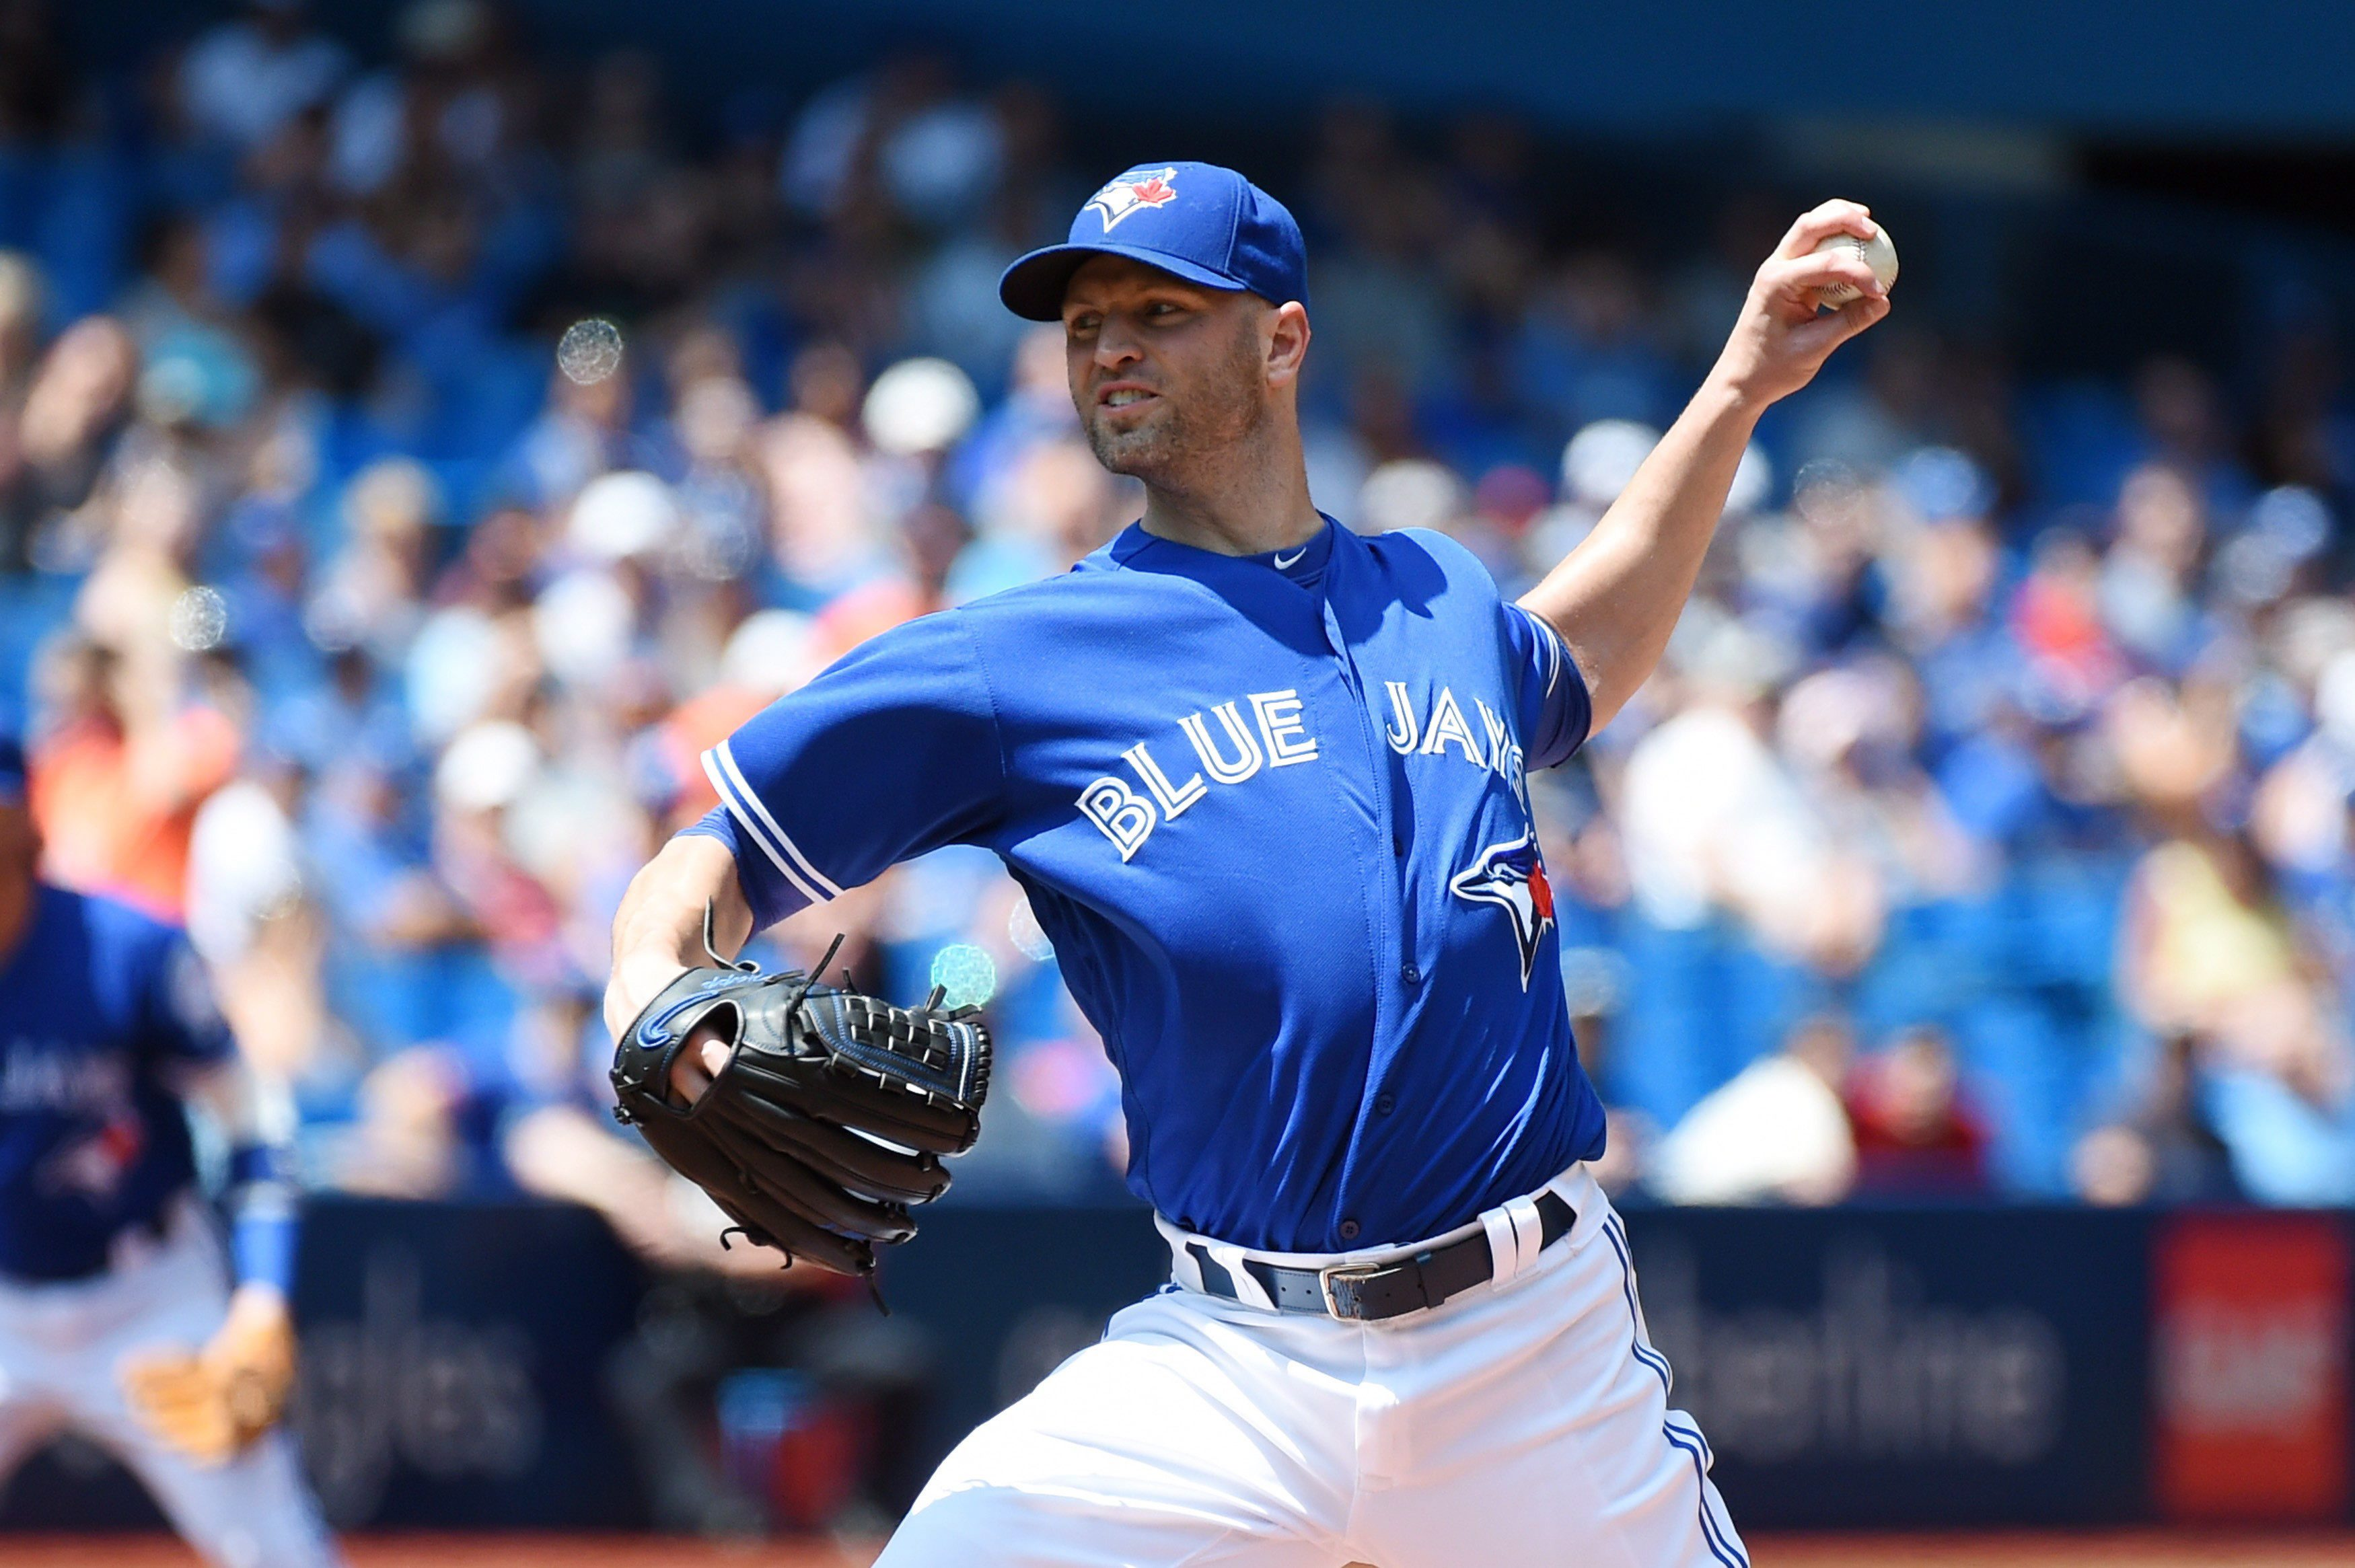 Major League Baseball trade: Yankees, Blue Jays reportedly agree to J.A. Happ trade